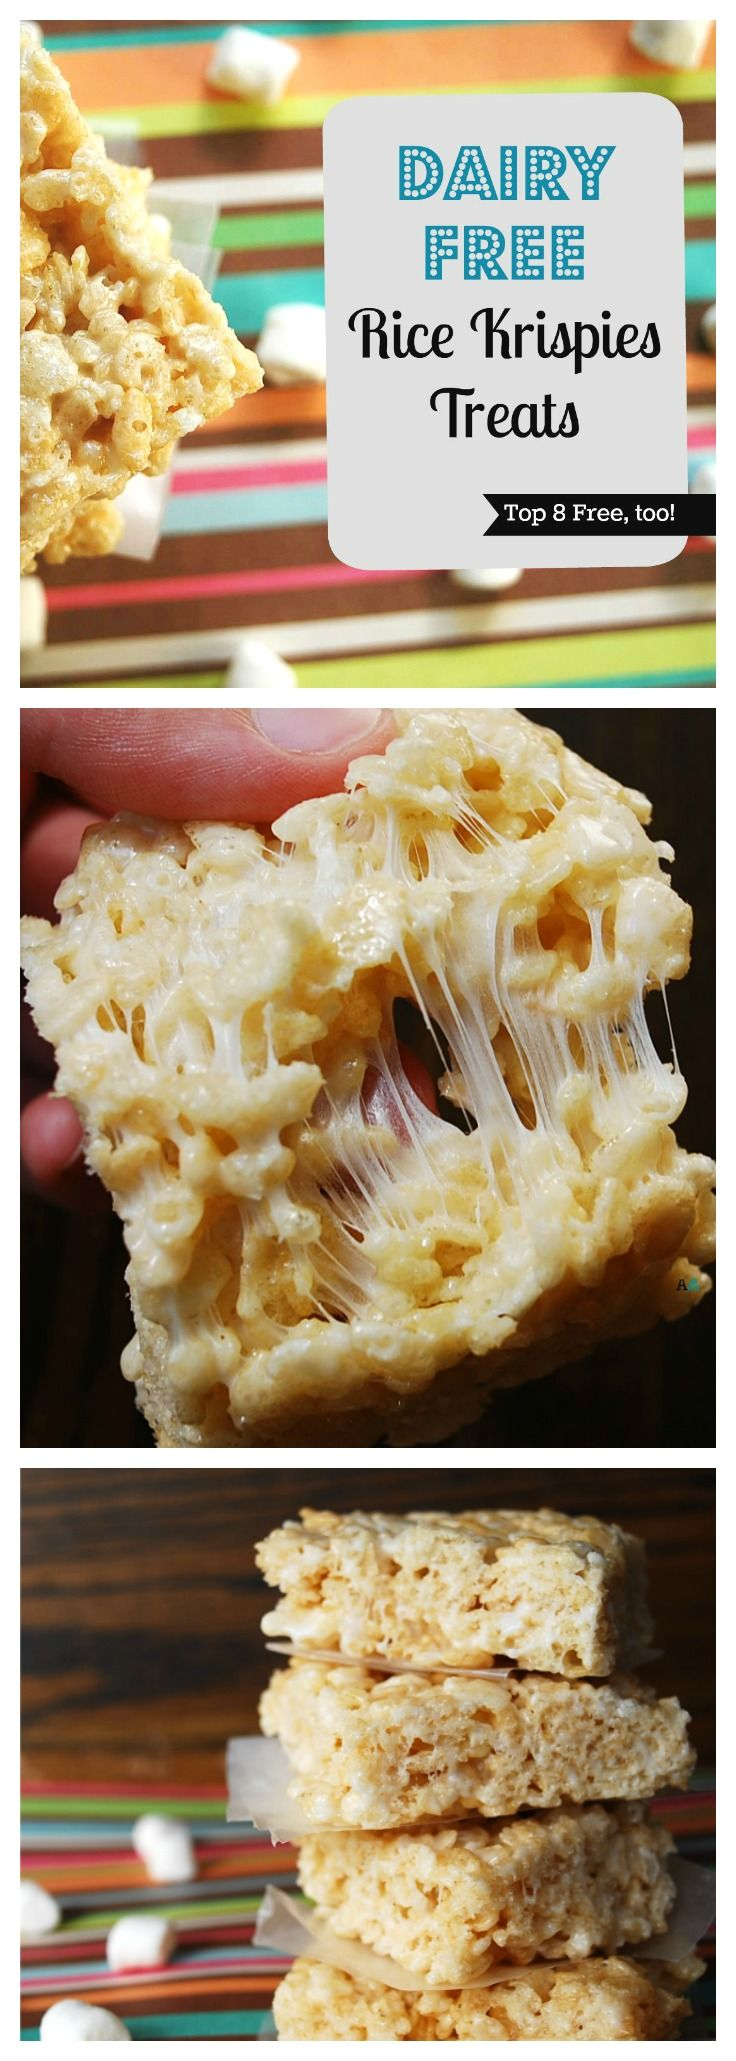 Best 25+ Rice krispies gluten free ideas on Pinterest ...